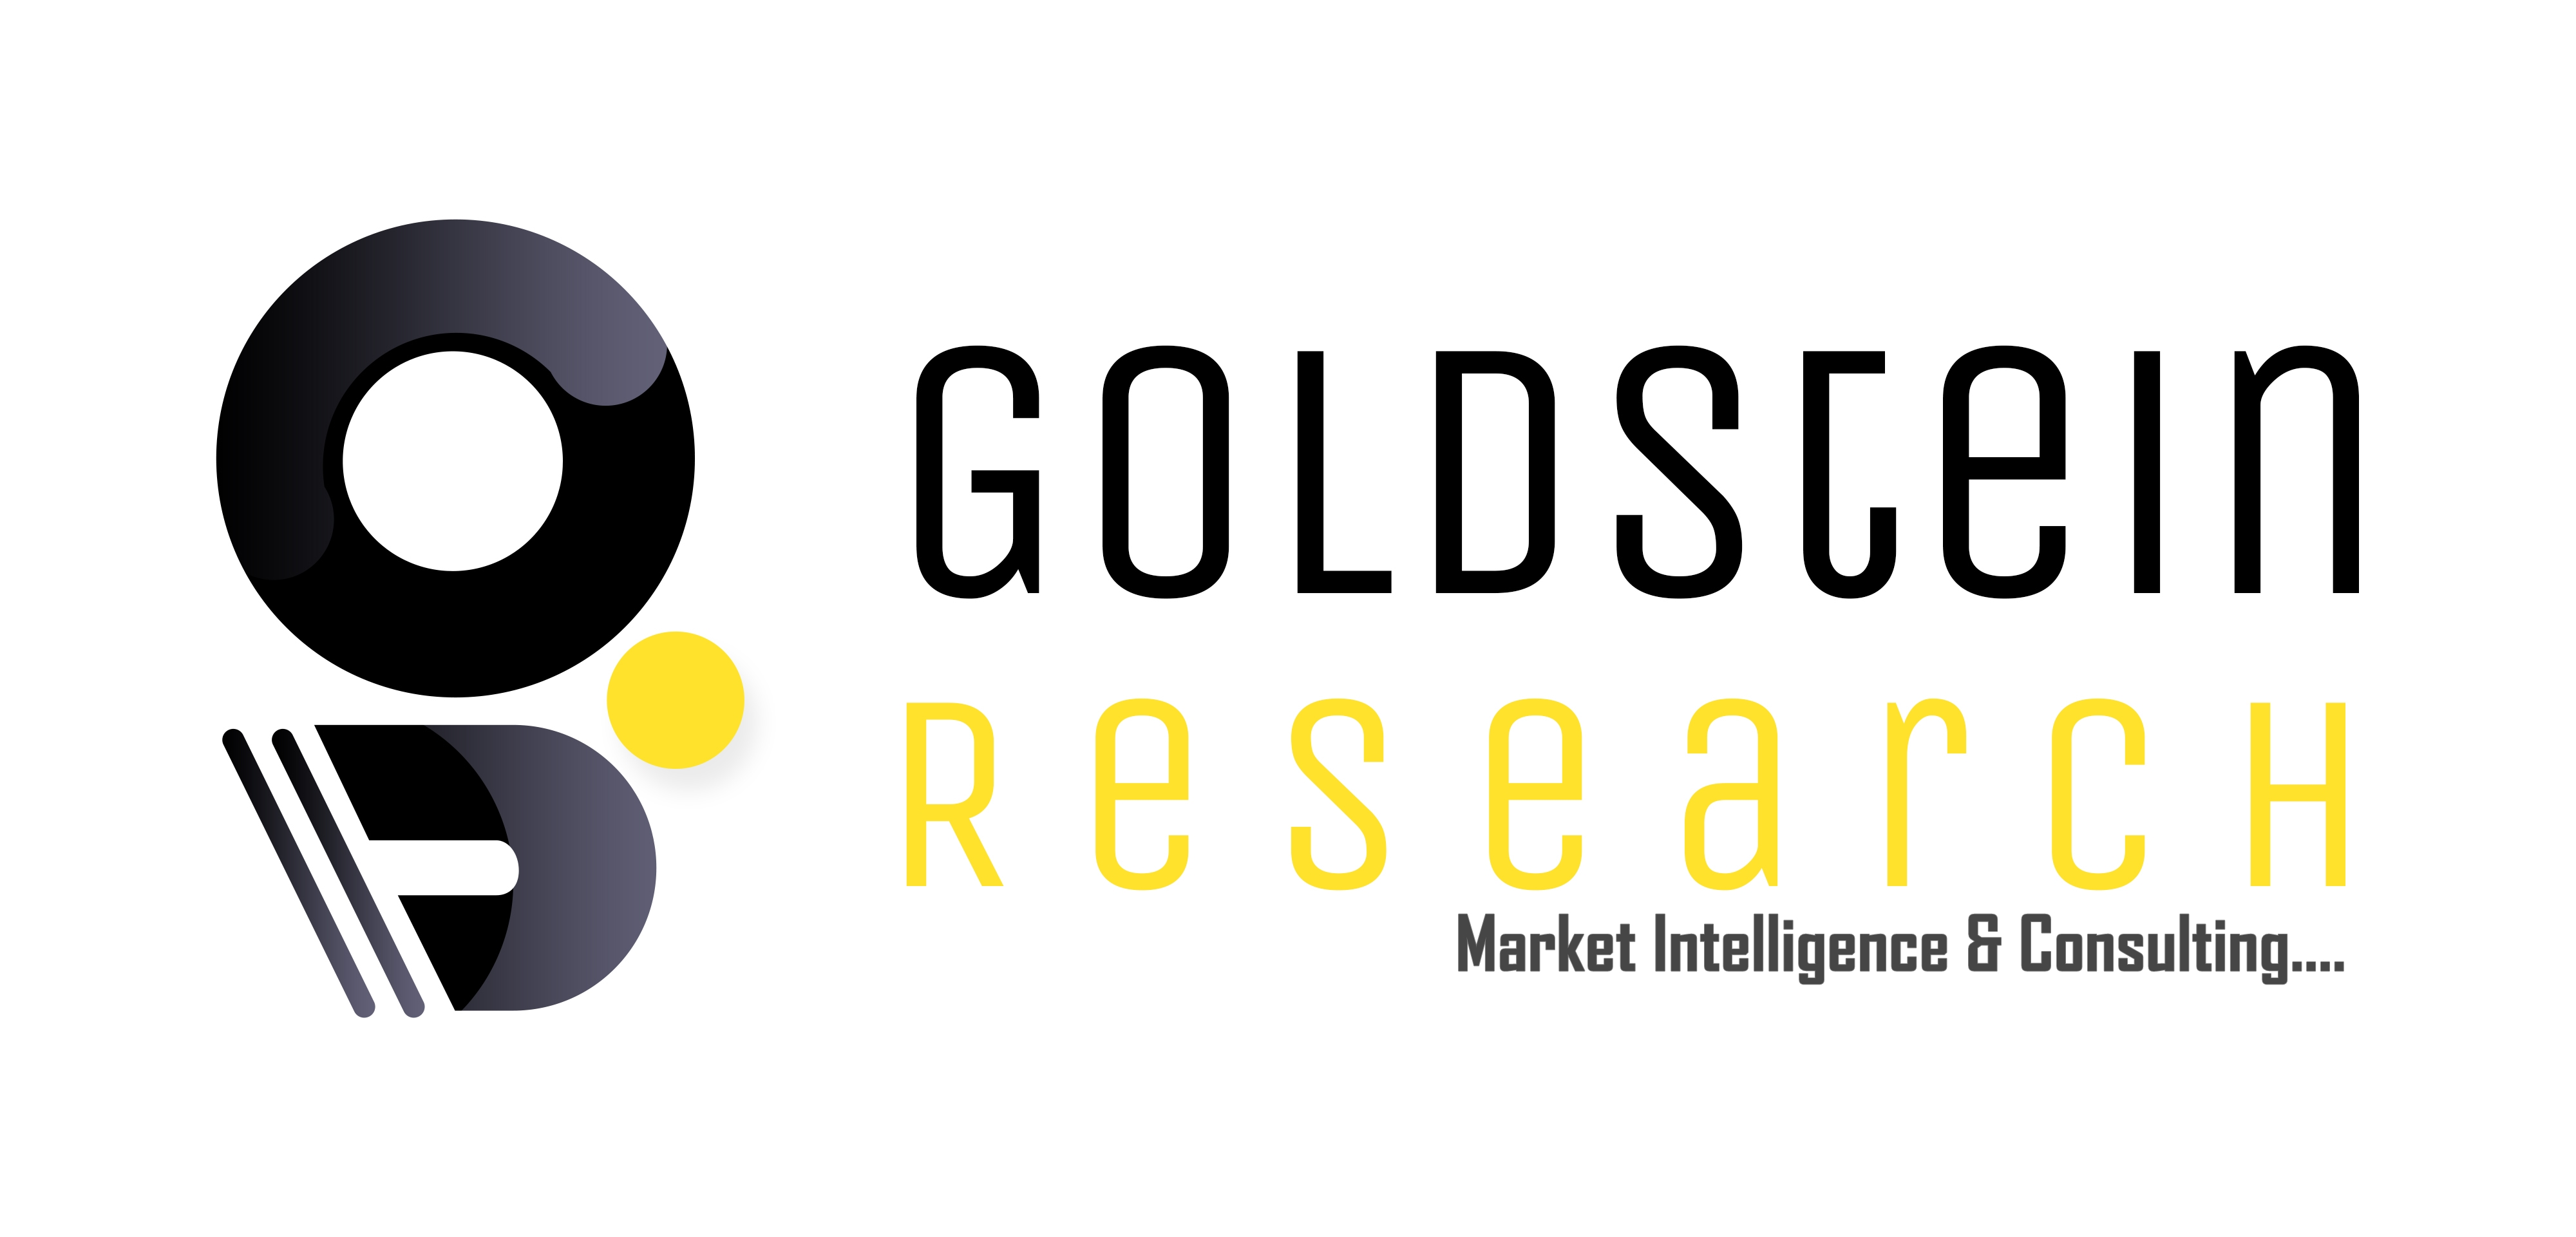 Recreational Vehicles Sales in China to Grow to 400,000 Units by 2025-Goldstein Research